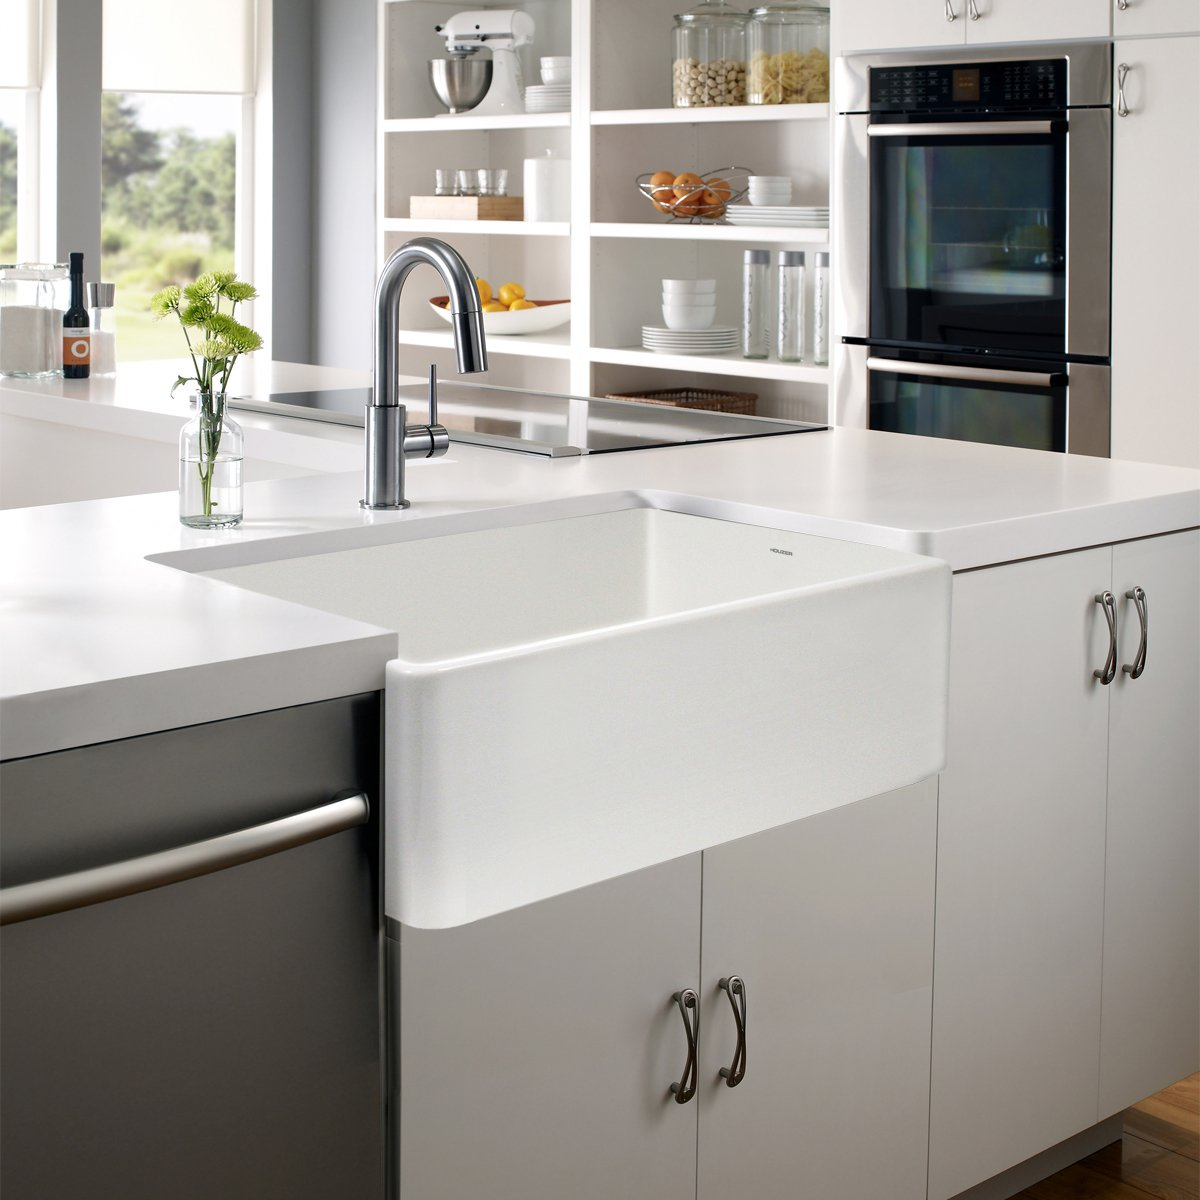 Houzer PTG-4300 WH Platus Series Apron-Front Fireclay Single Bowl Kitchen Sink, 33'', White by HOUZER (Image #3)